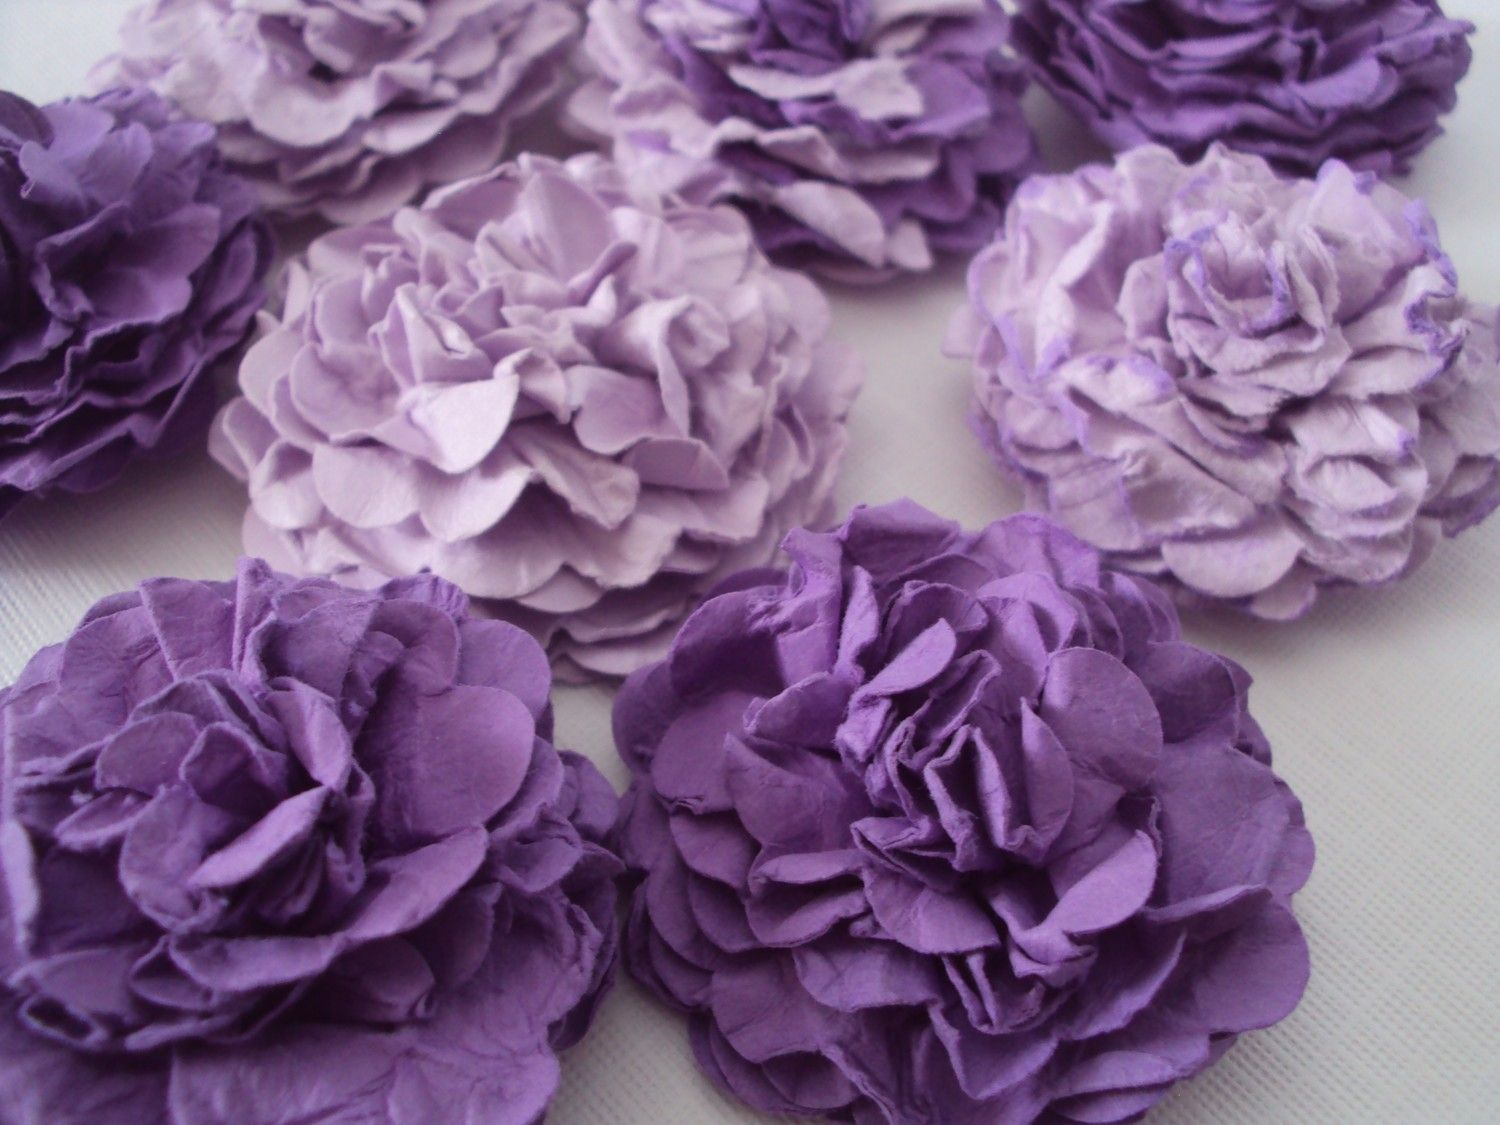 Purple carnations paper flowers embellishments for crafts purple carnations paper flowers embellishments for crafts scrapbooking cardmaking aceos atcs collage altered art paper flowers 999 via etsy mightylinksfo